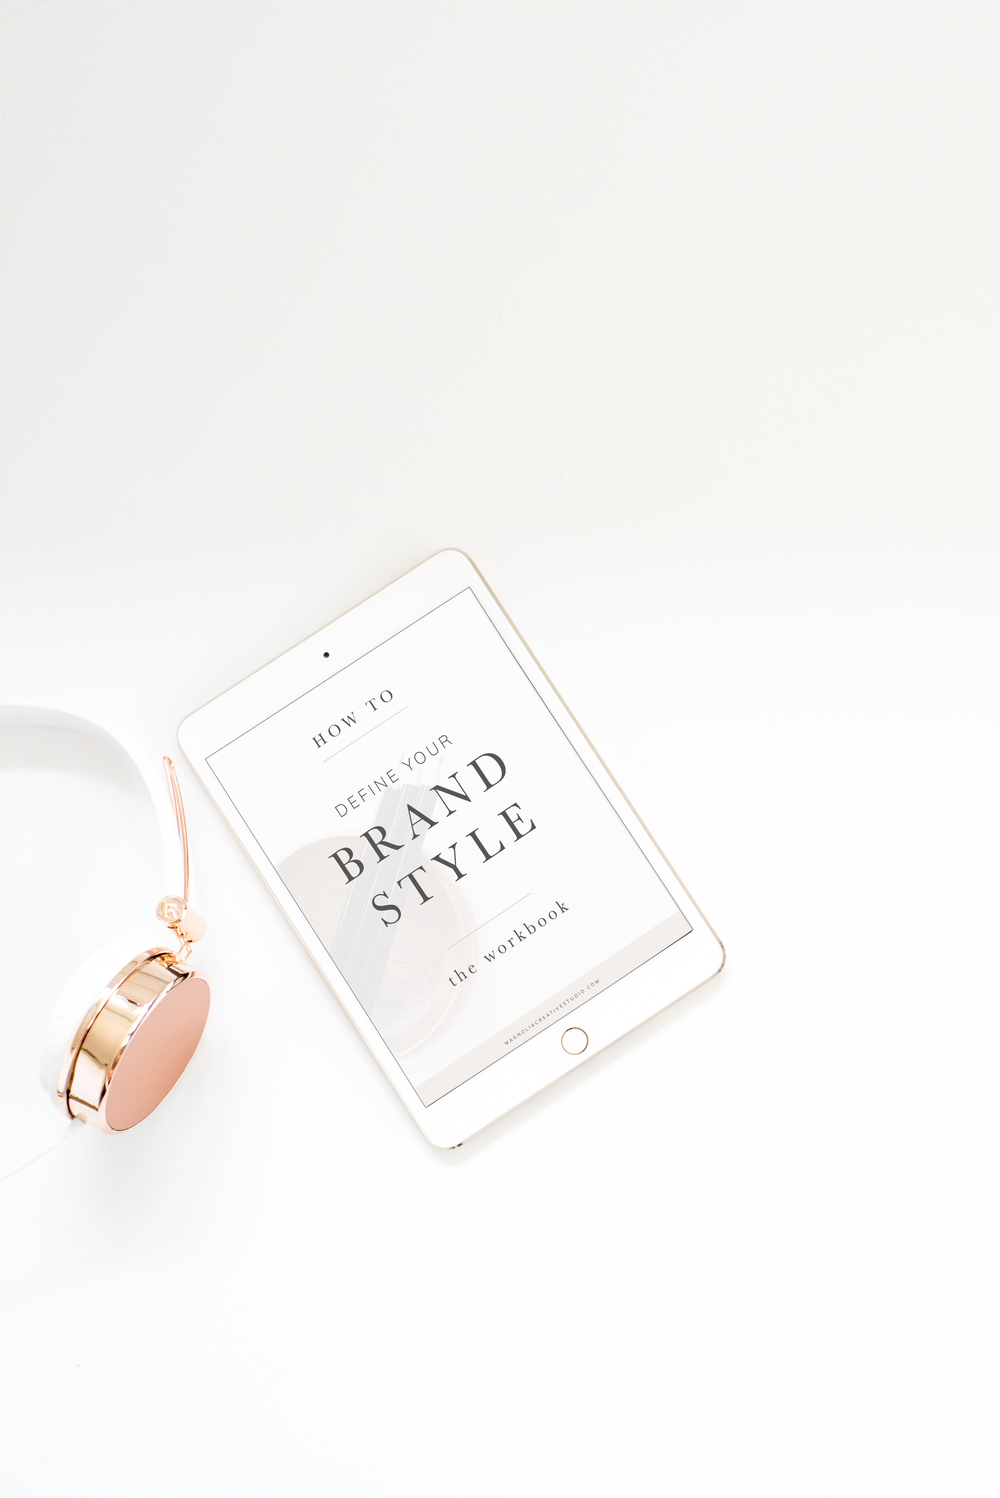 Download How to Define your Brand - Magnolia Creative Studio